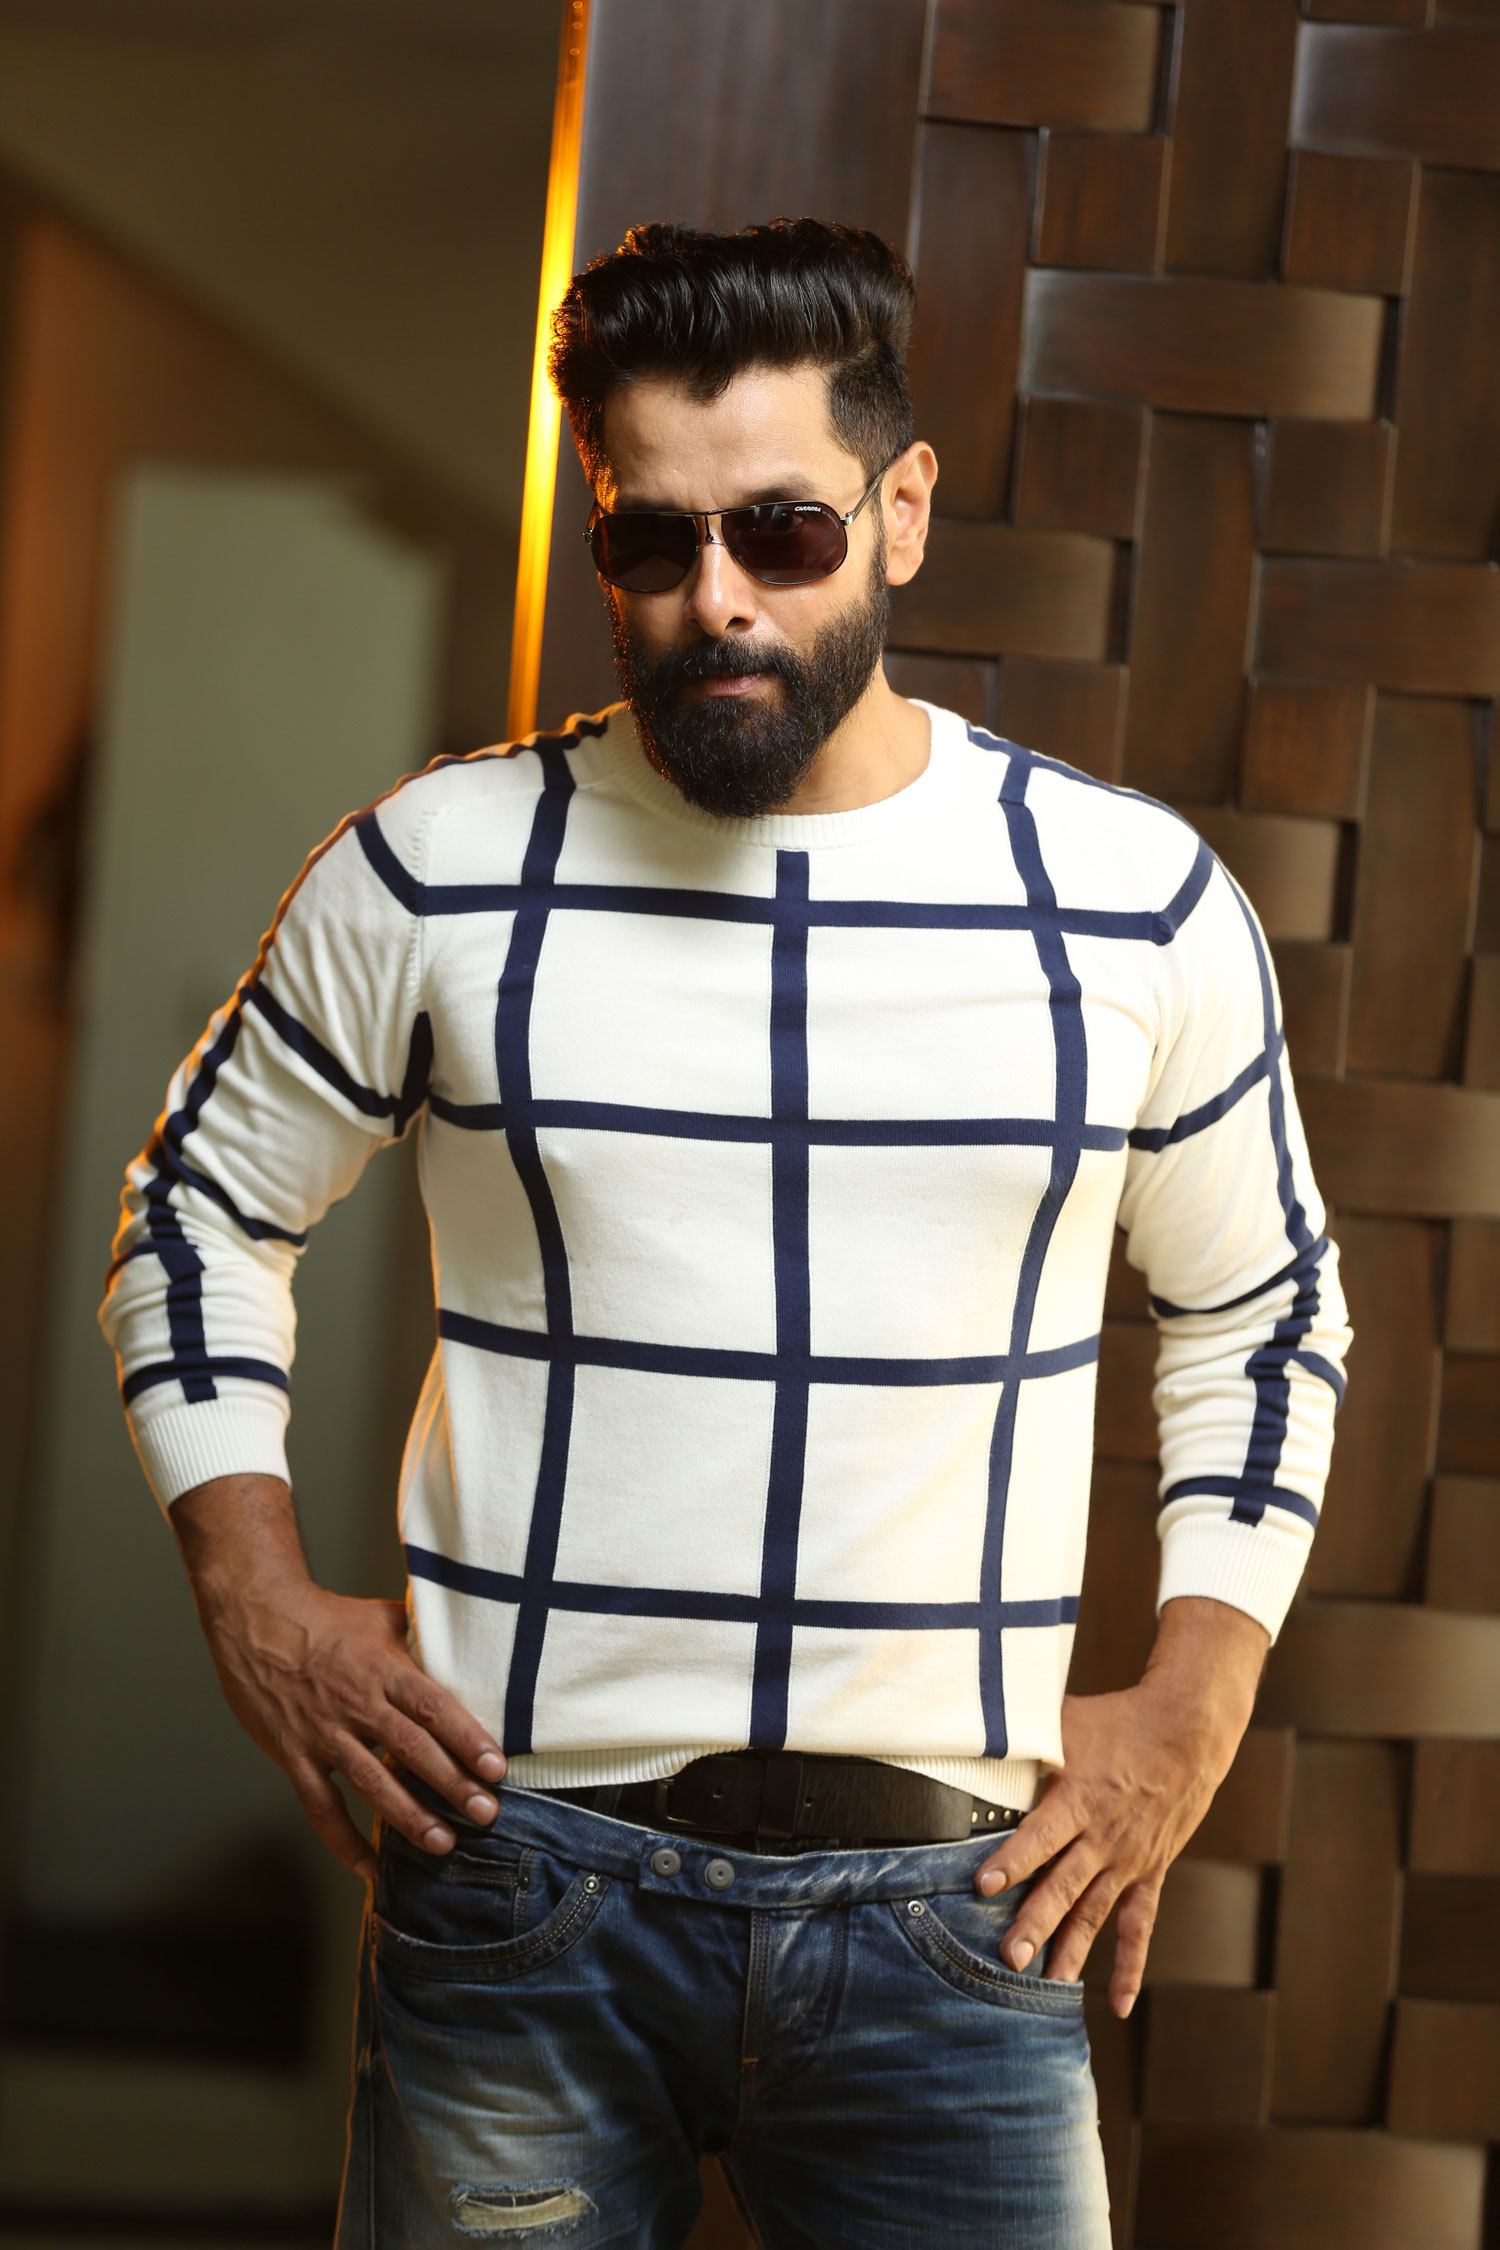 Full Hd Wallpaper Couple Vikram Latest Hd Photos Images Wallpapers Pics Download